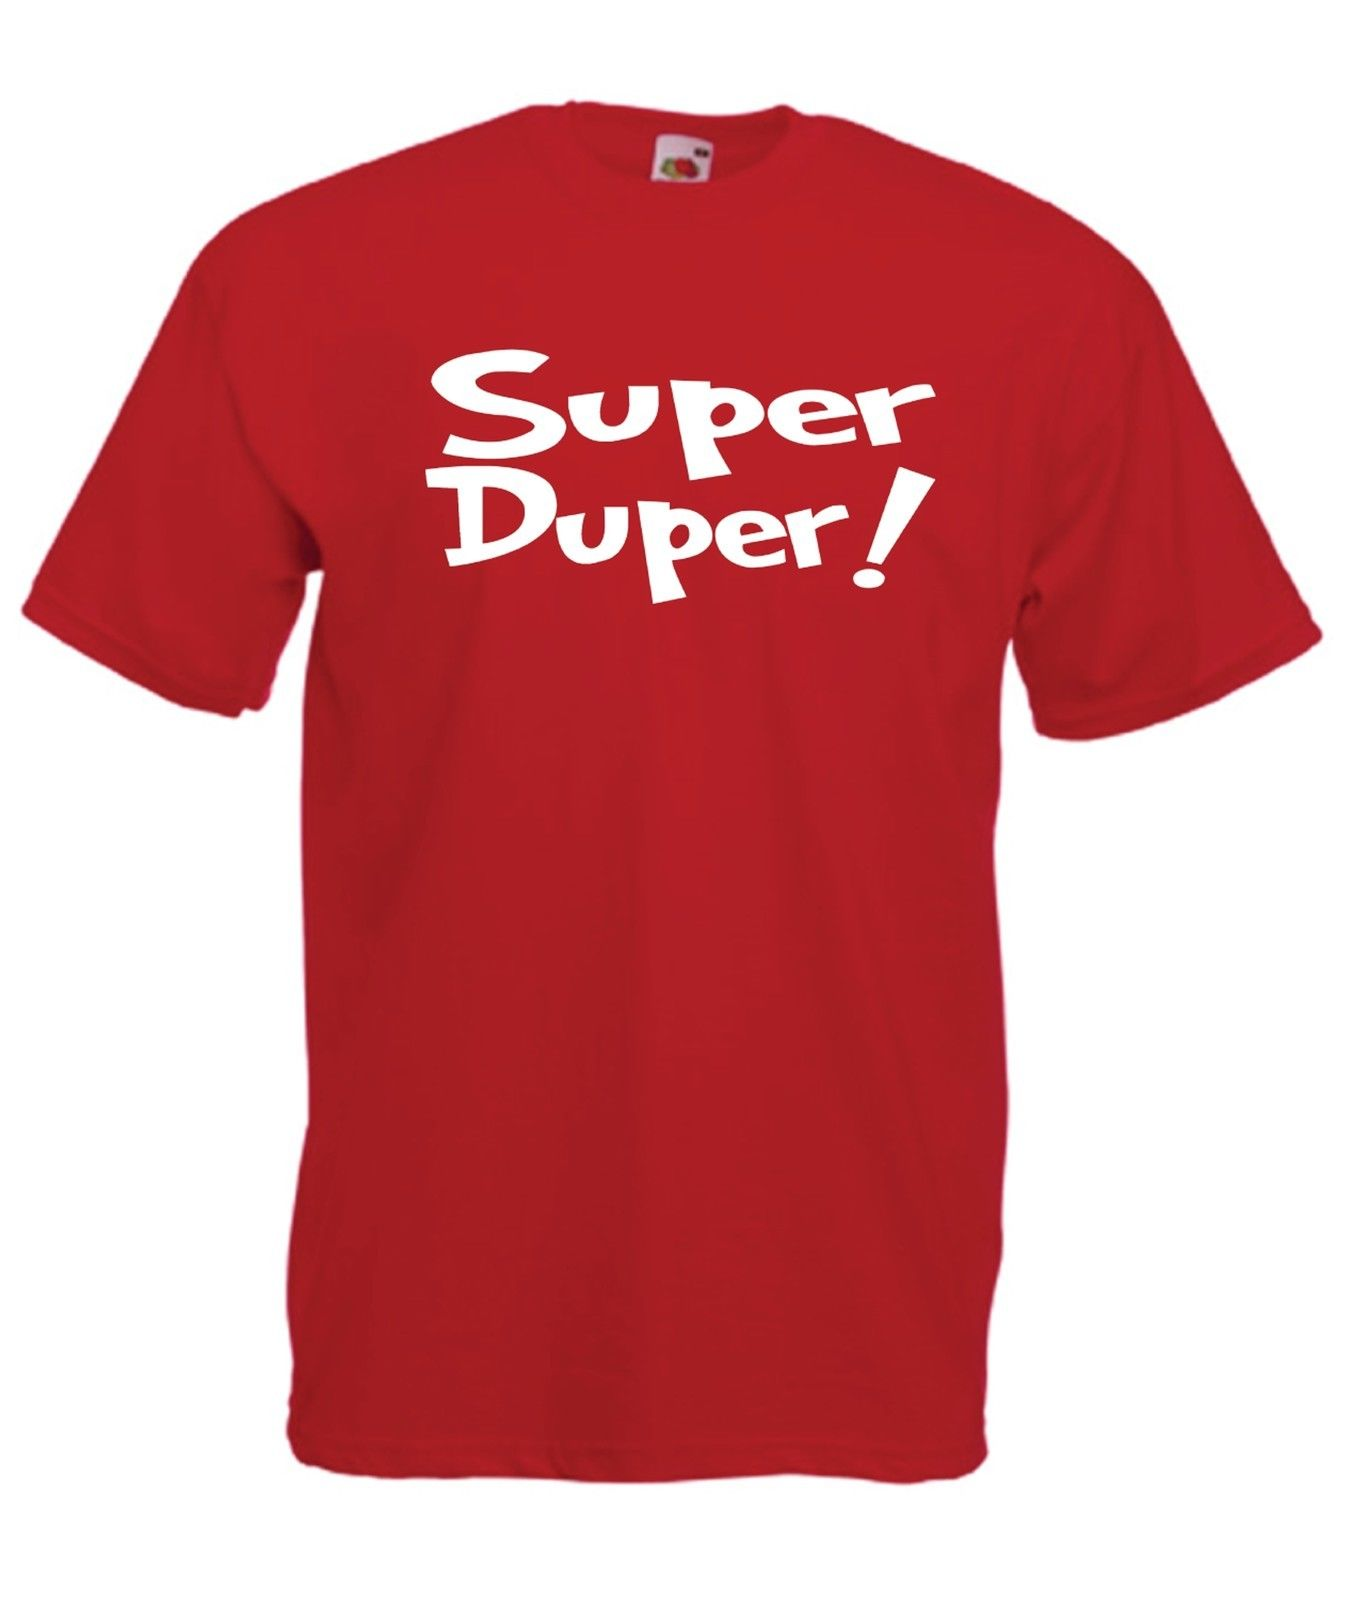 SUPER DUPER funny party fashion top xmas birthday gift idea mens womans T SHIRT